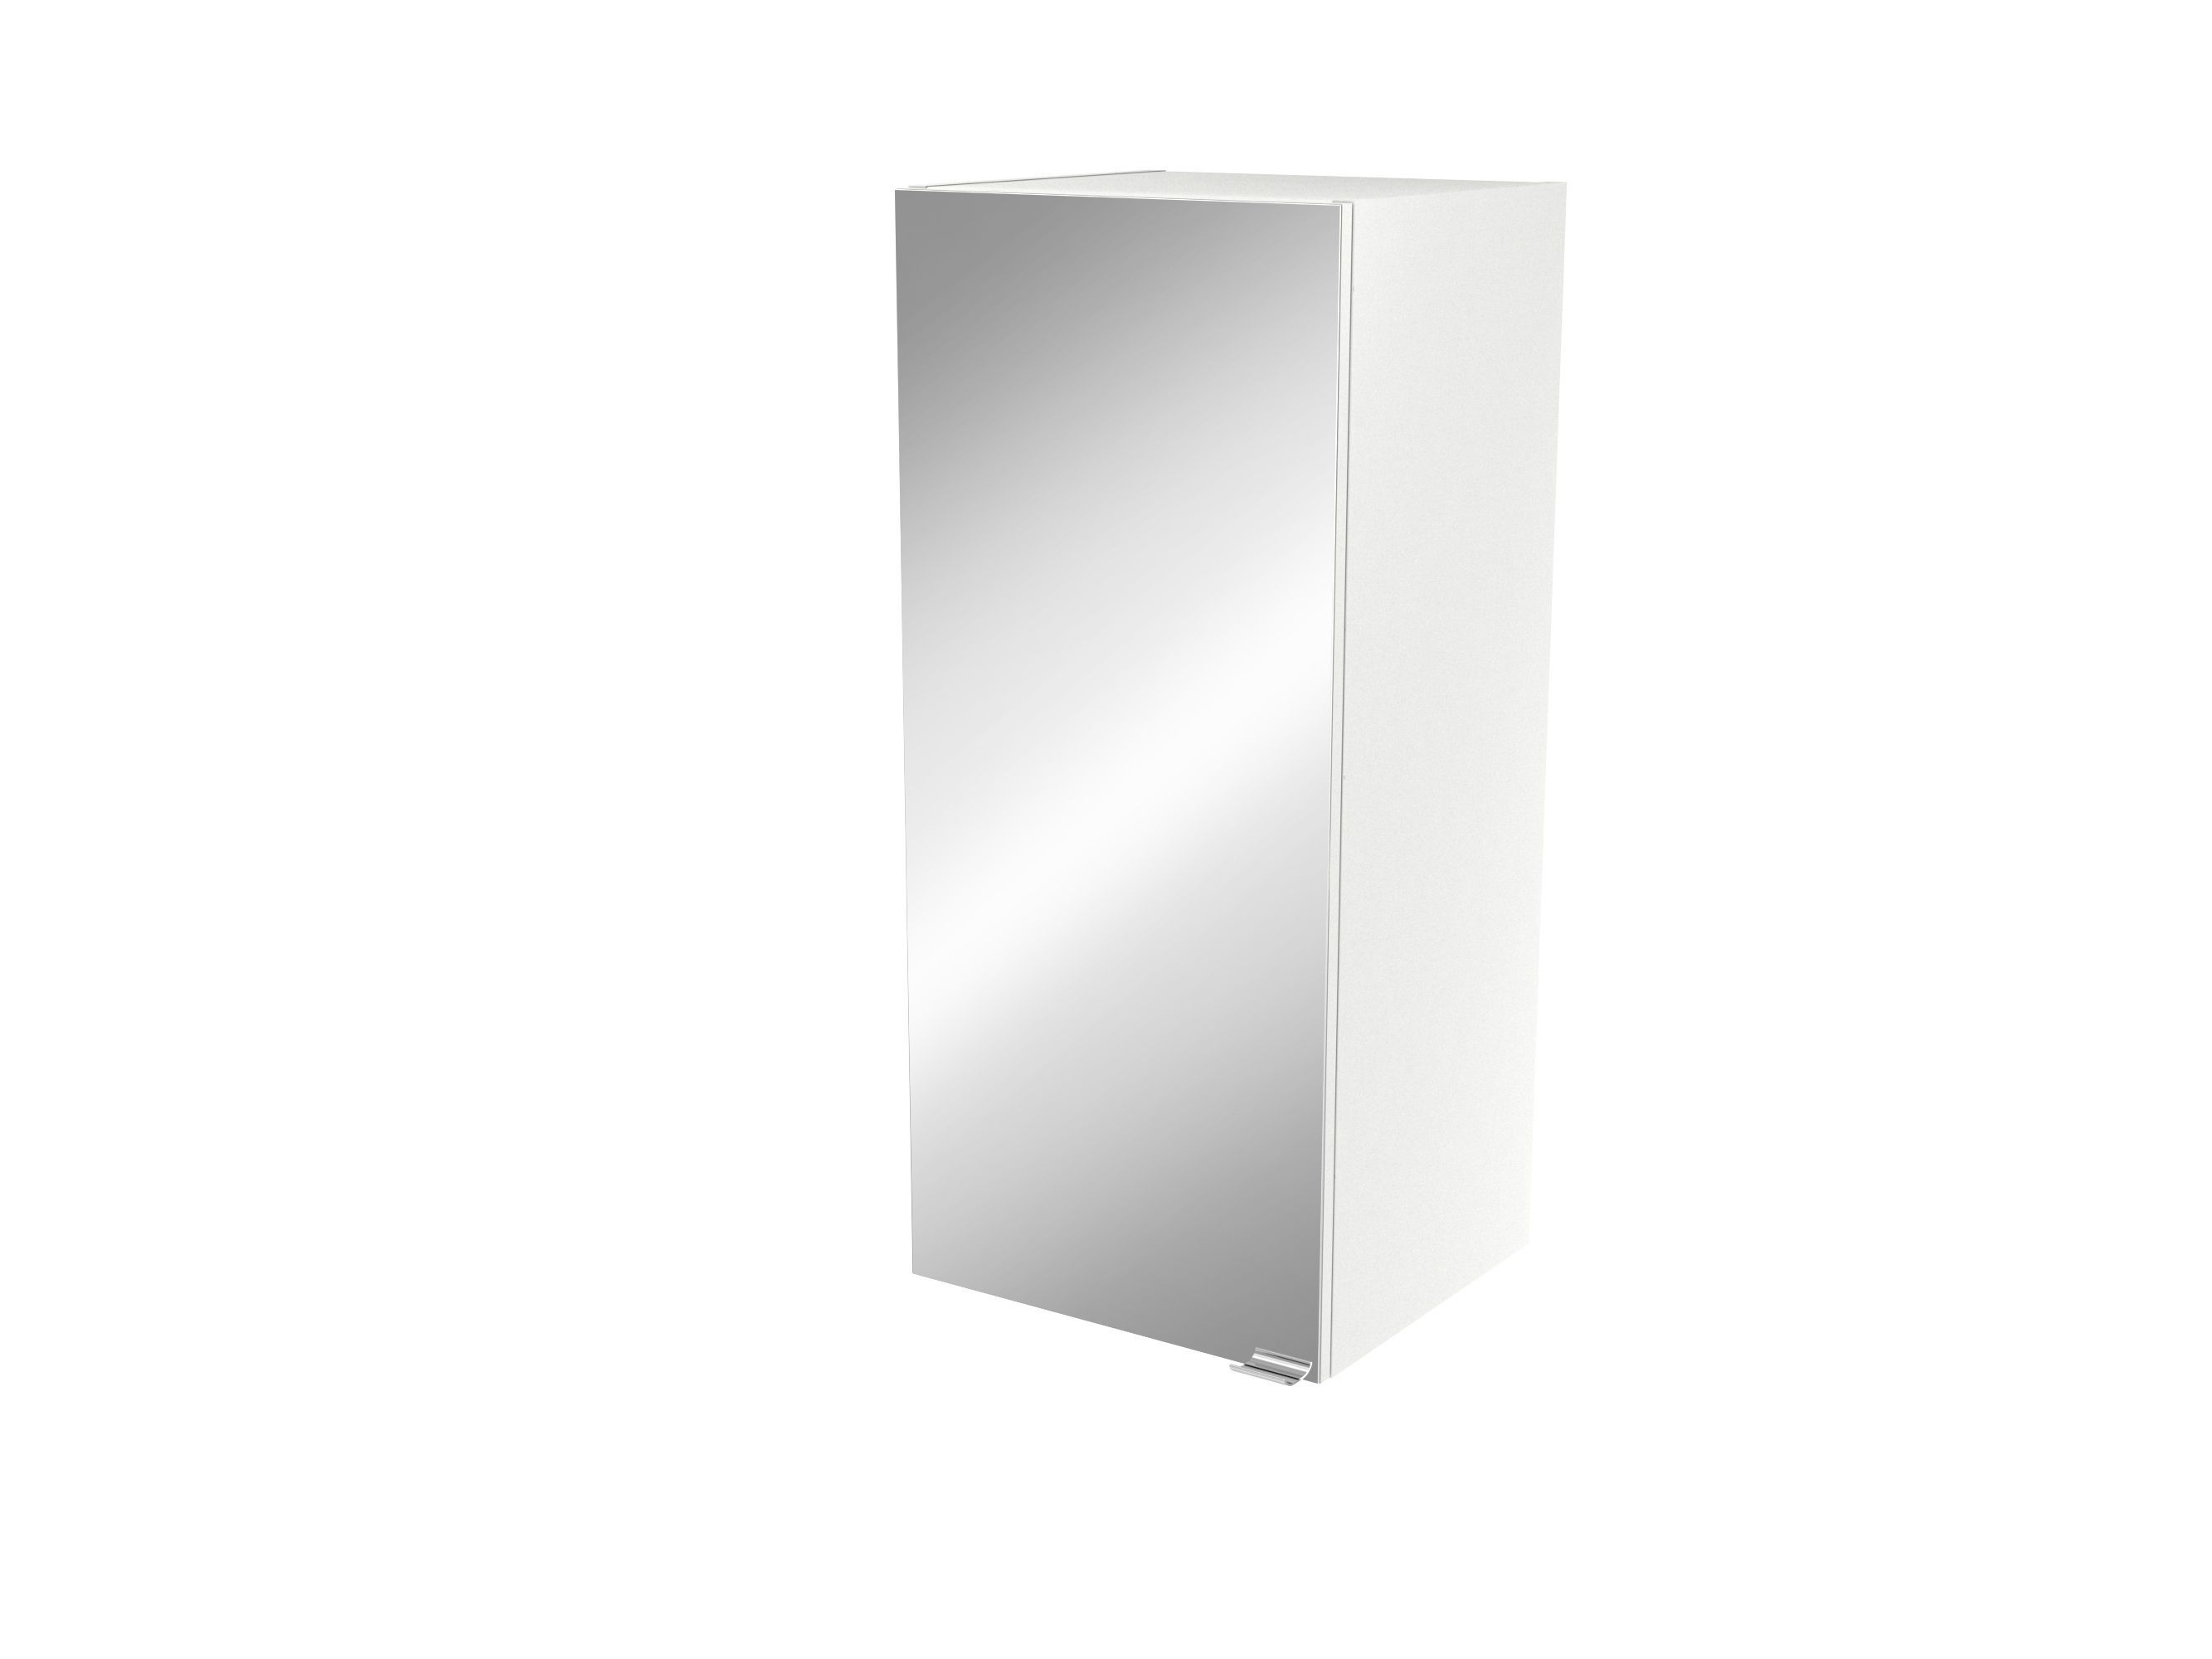 Cooke Lewis Imandra Gloss White Deep Mirrored Wall Cabinet W 400mm Departments Diy At B Q